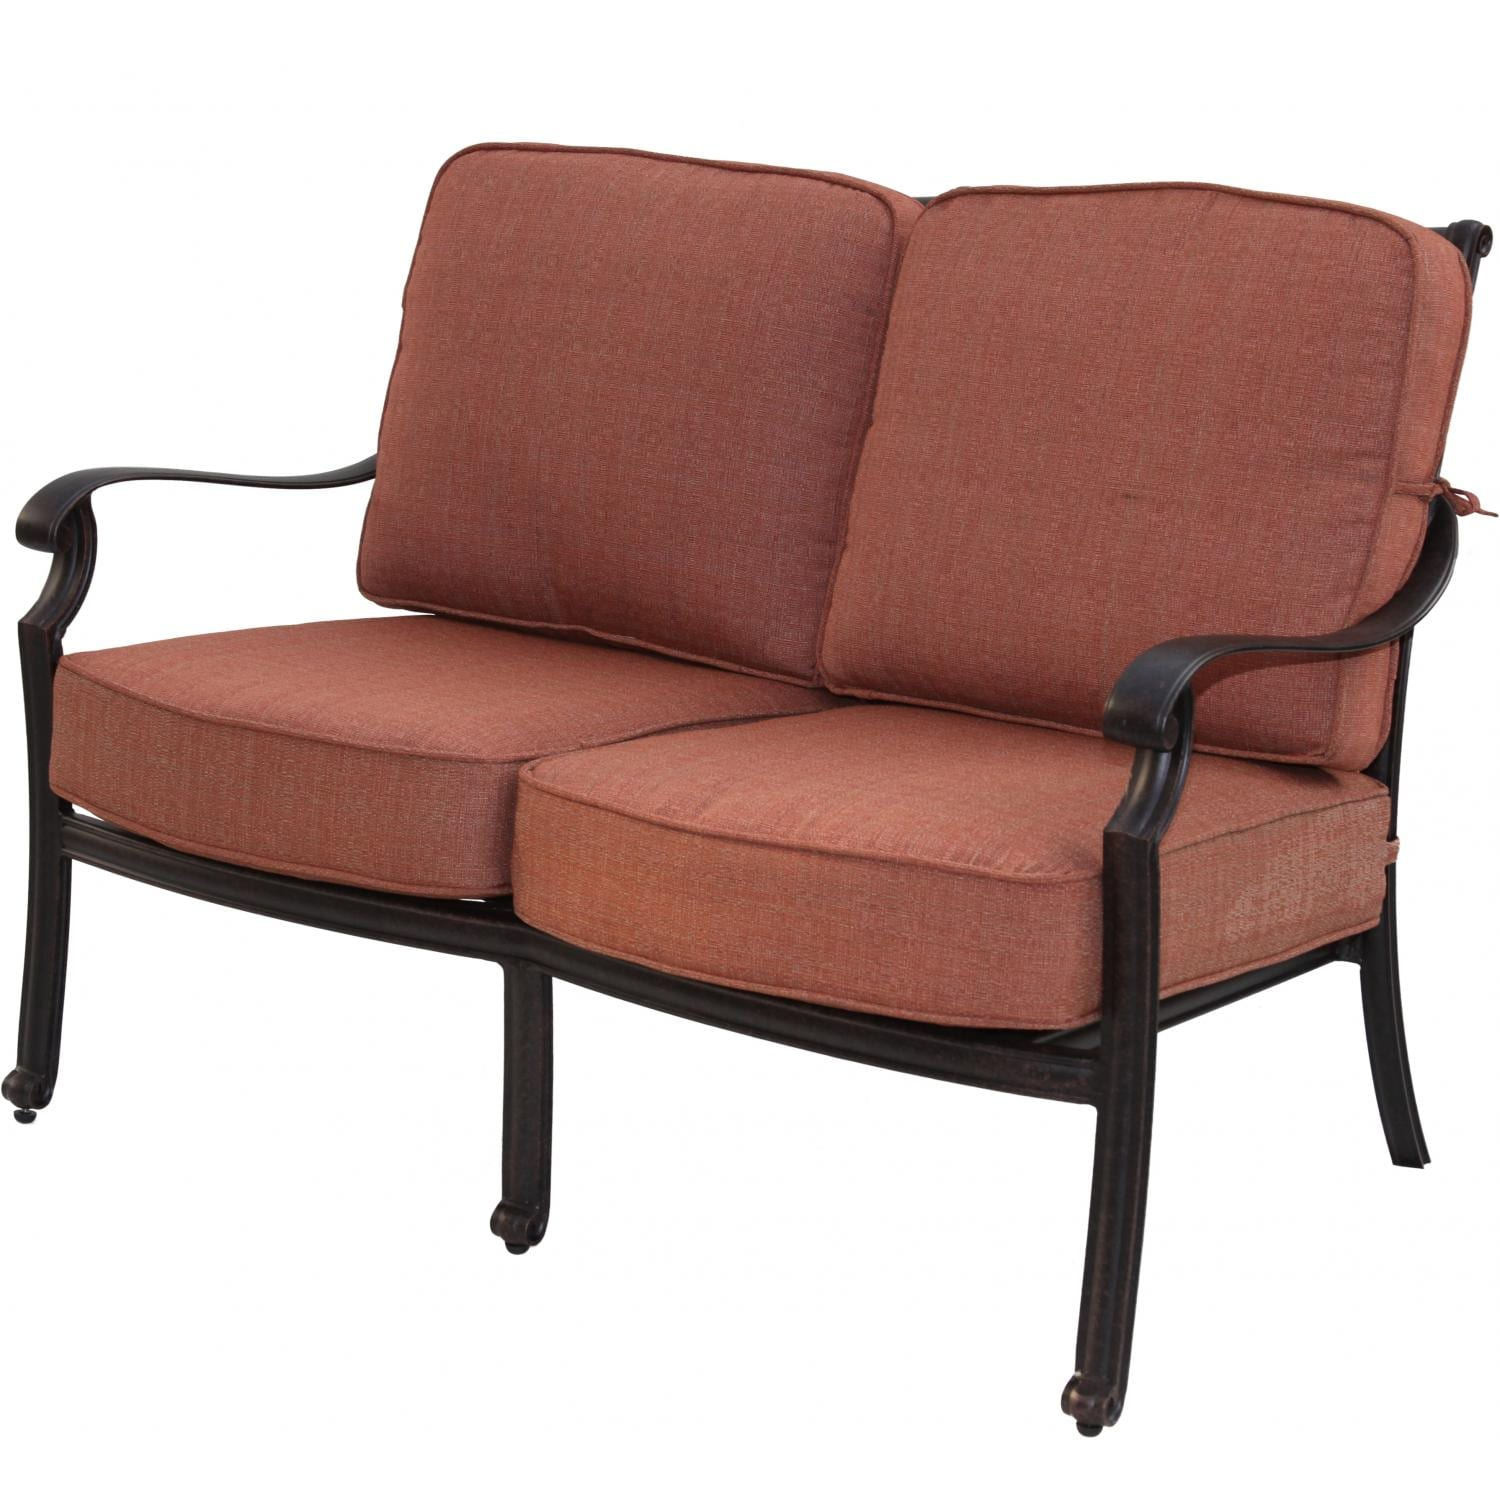 Darlee St. Cruz Cast Aluminum Patio Loveseat